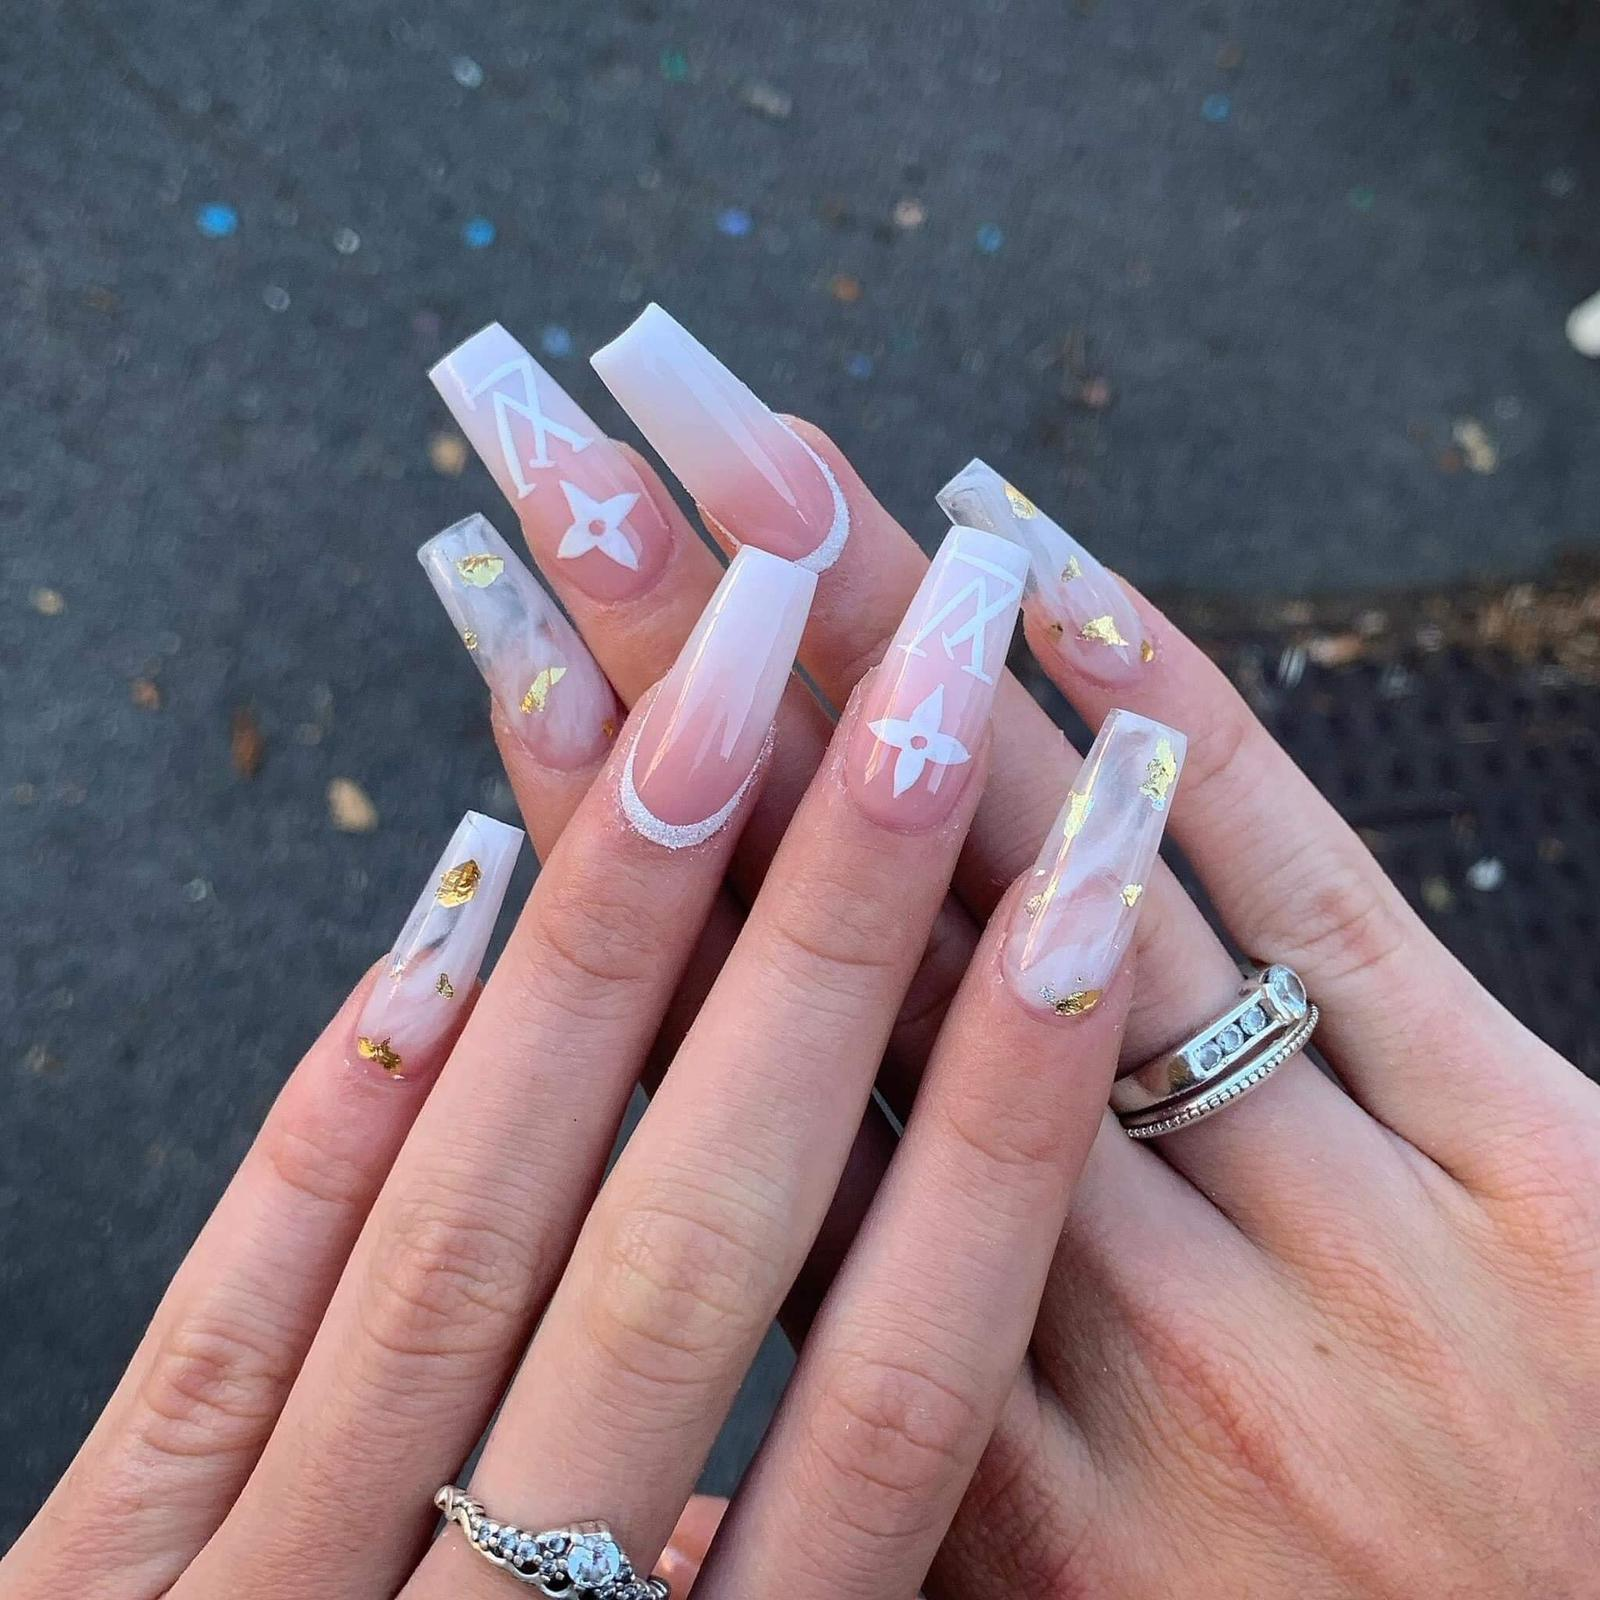 nail-plaza-twickenham-nail-design-2608-1